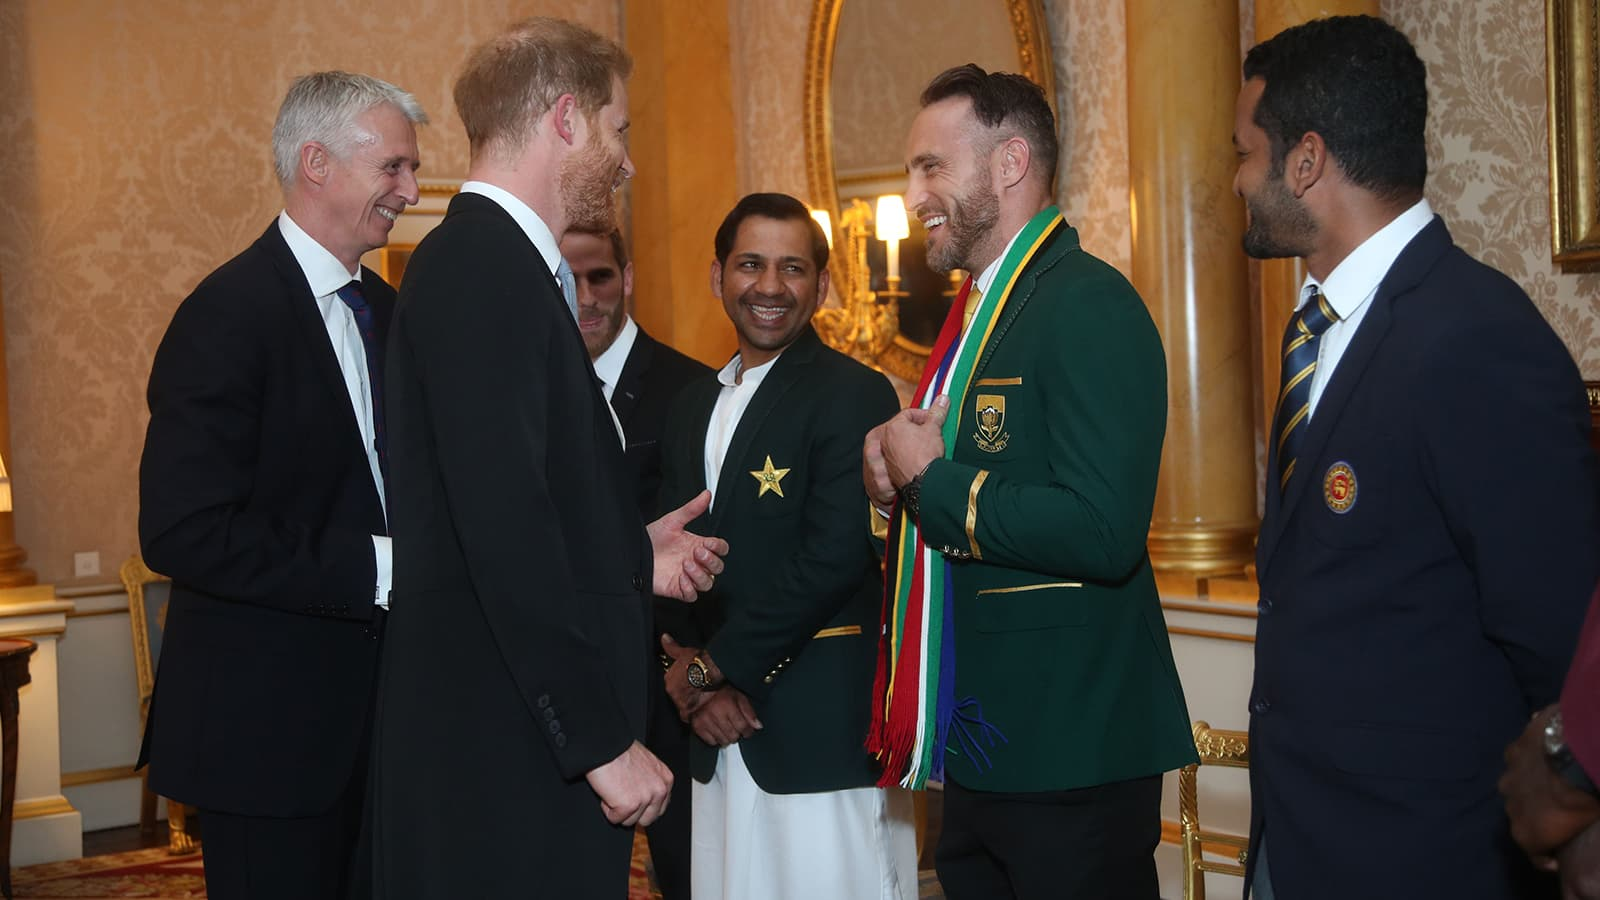 Britain's Prince Harry, Duke of Sussex chats to South Africa's captain Faf du Plessis, (C), Pakistan's captain Sarfaraz Ahmed (L) and Sri Lanka's captain Dimuth Karunaratne (R) during a meeting with the captains of the cricket teams participating in the World Cup 2019, in the 1844 Room at Buckingham Palace, London on May 29. — AFP